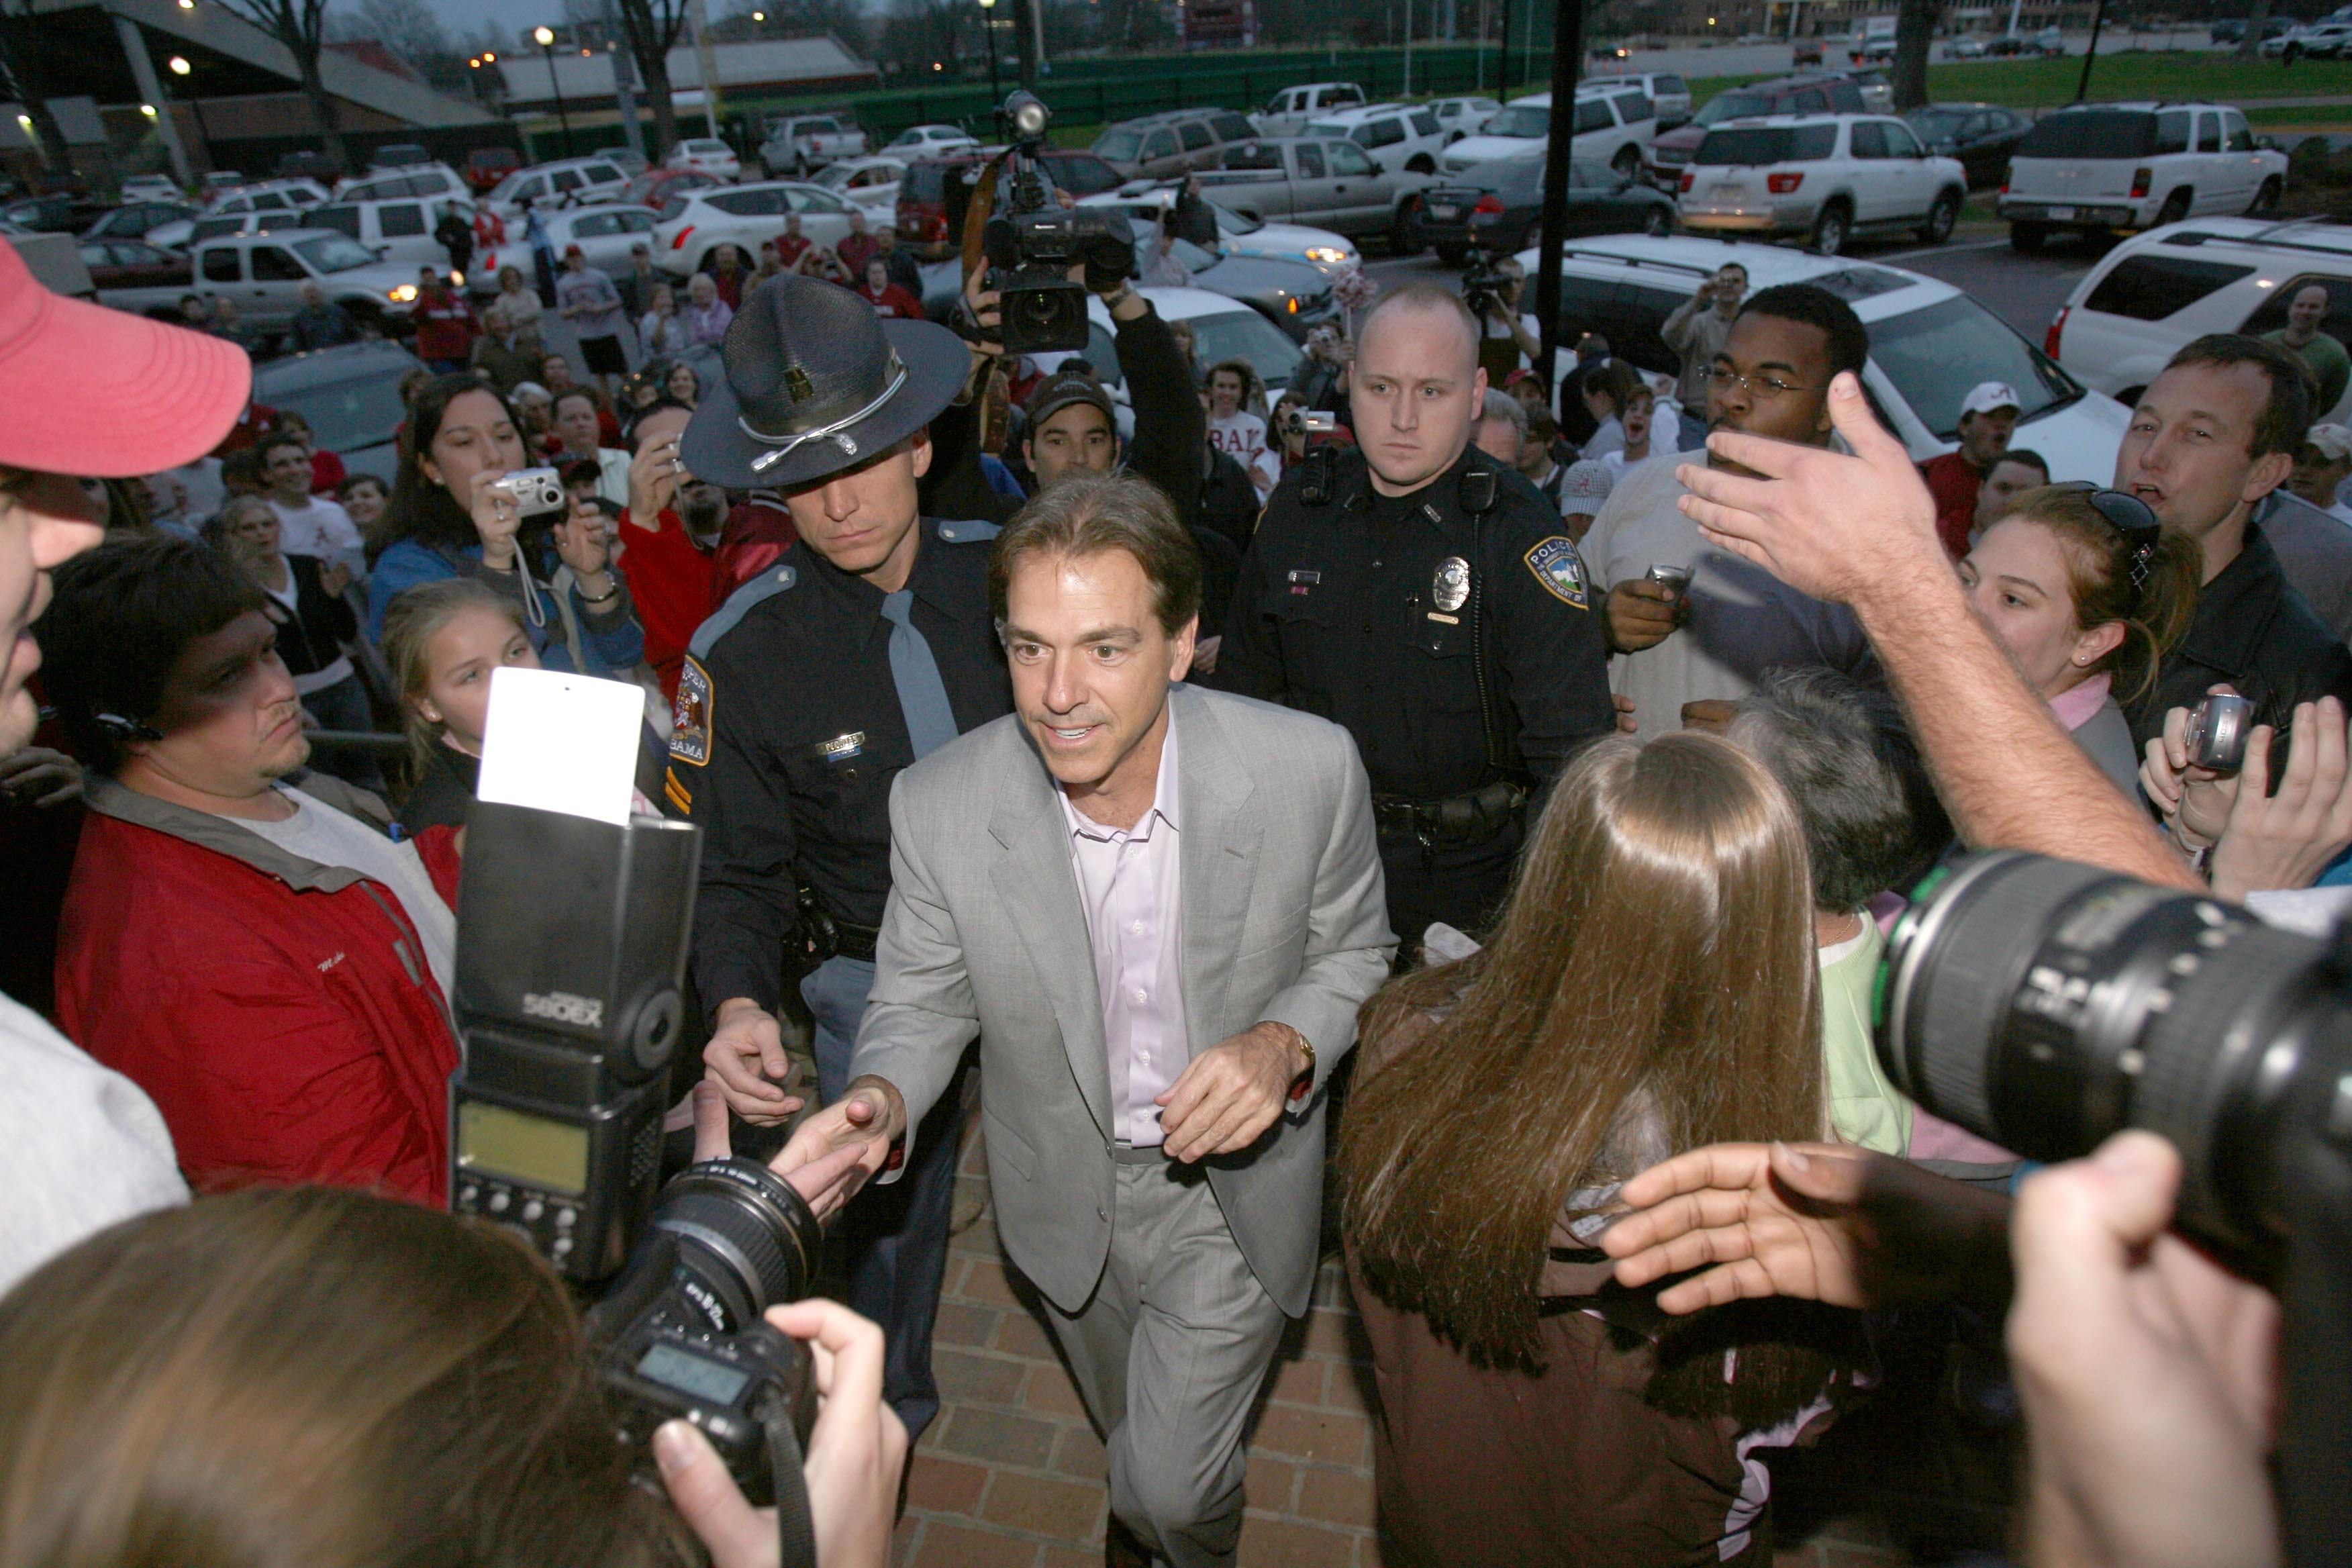 1-3-2007 -- Tuscaloosa, Ala -- Nick Saban arrives at the football building on the University of Alabama campus on Wednesday evening after accepting the position as football coach. (Tuscaloosa News / Robert Sutton)